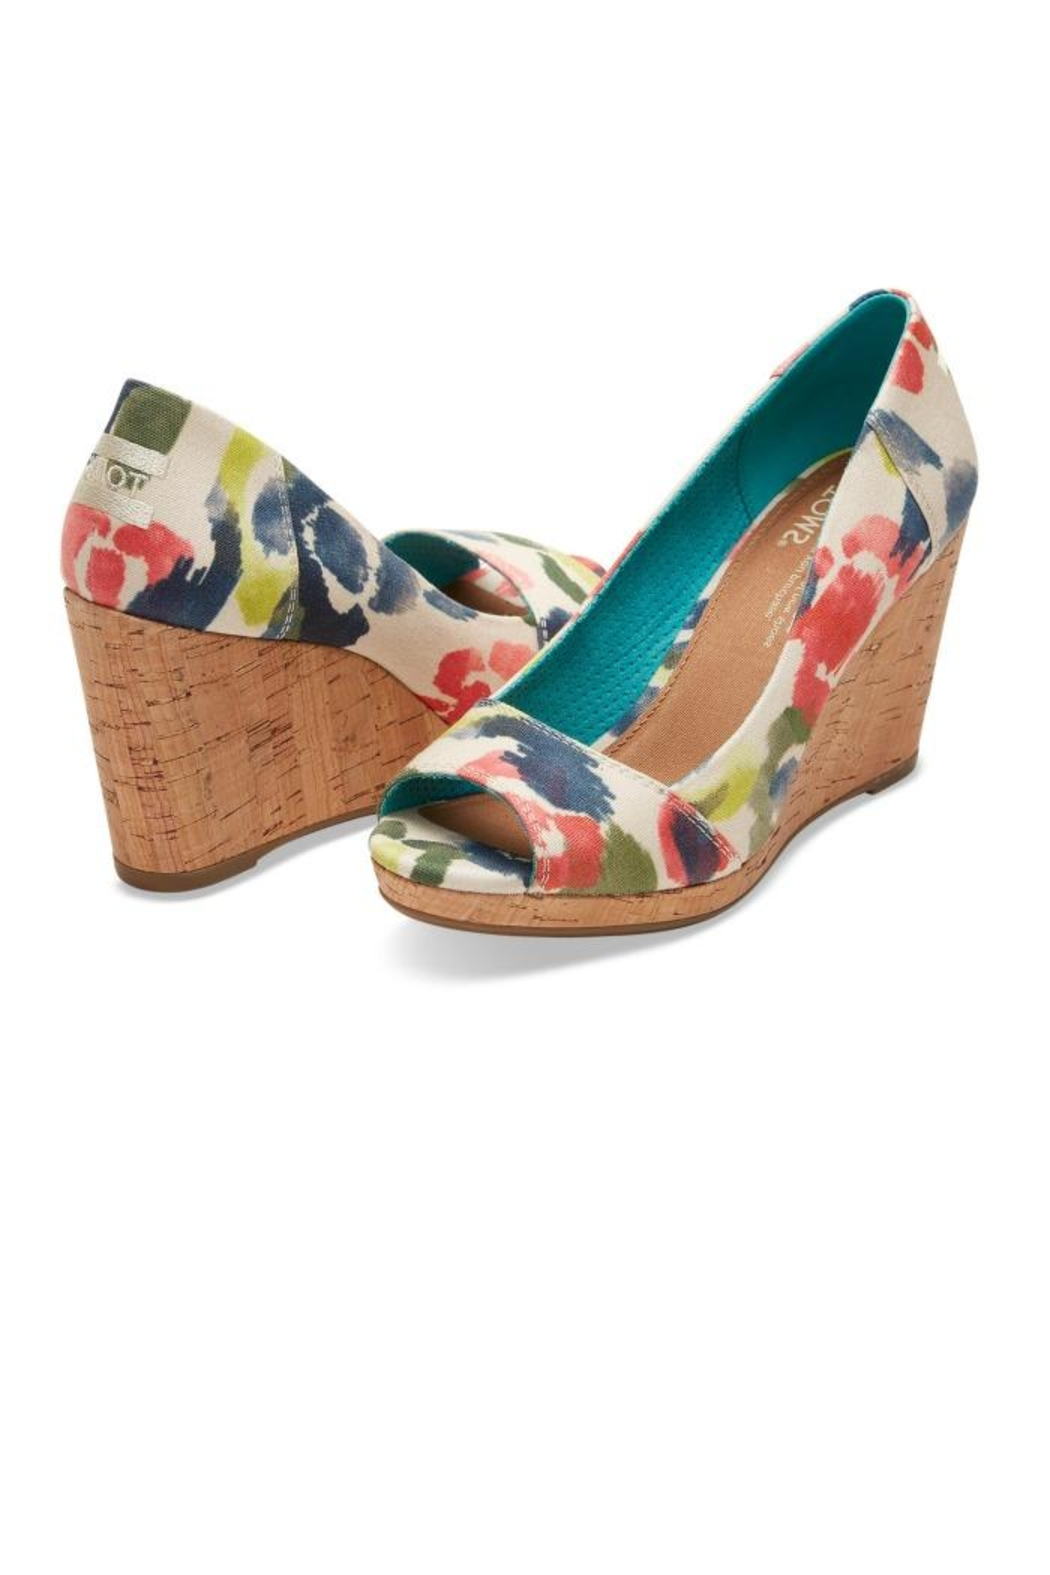 Toms Watercolor Floral Wedge From Minnesota By Apricot Lane Duluth